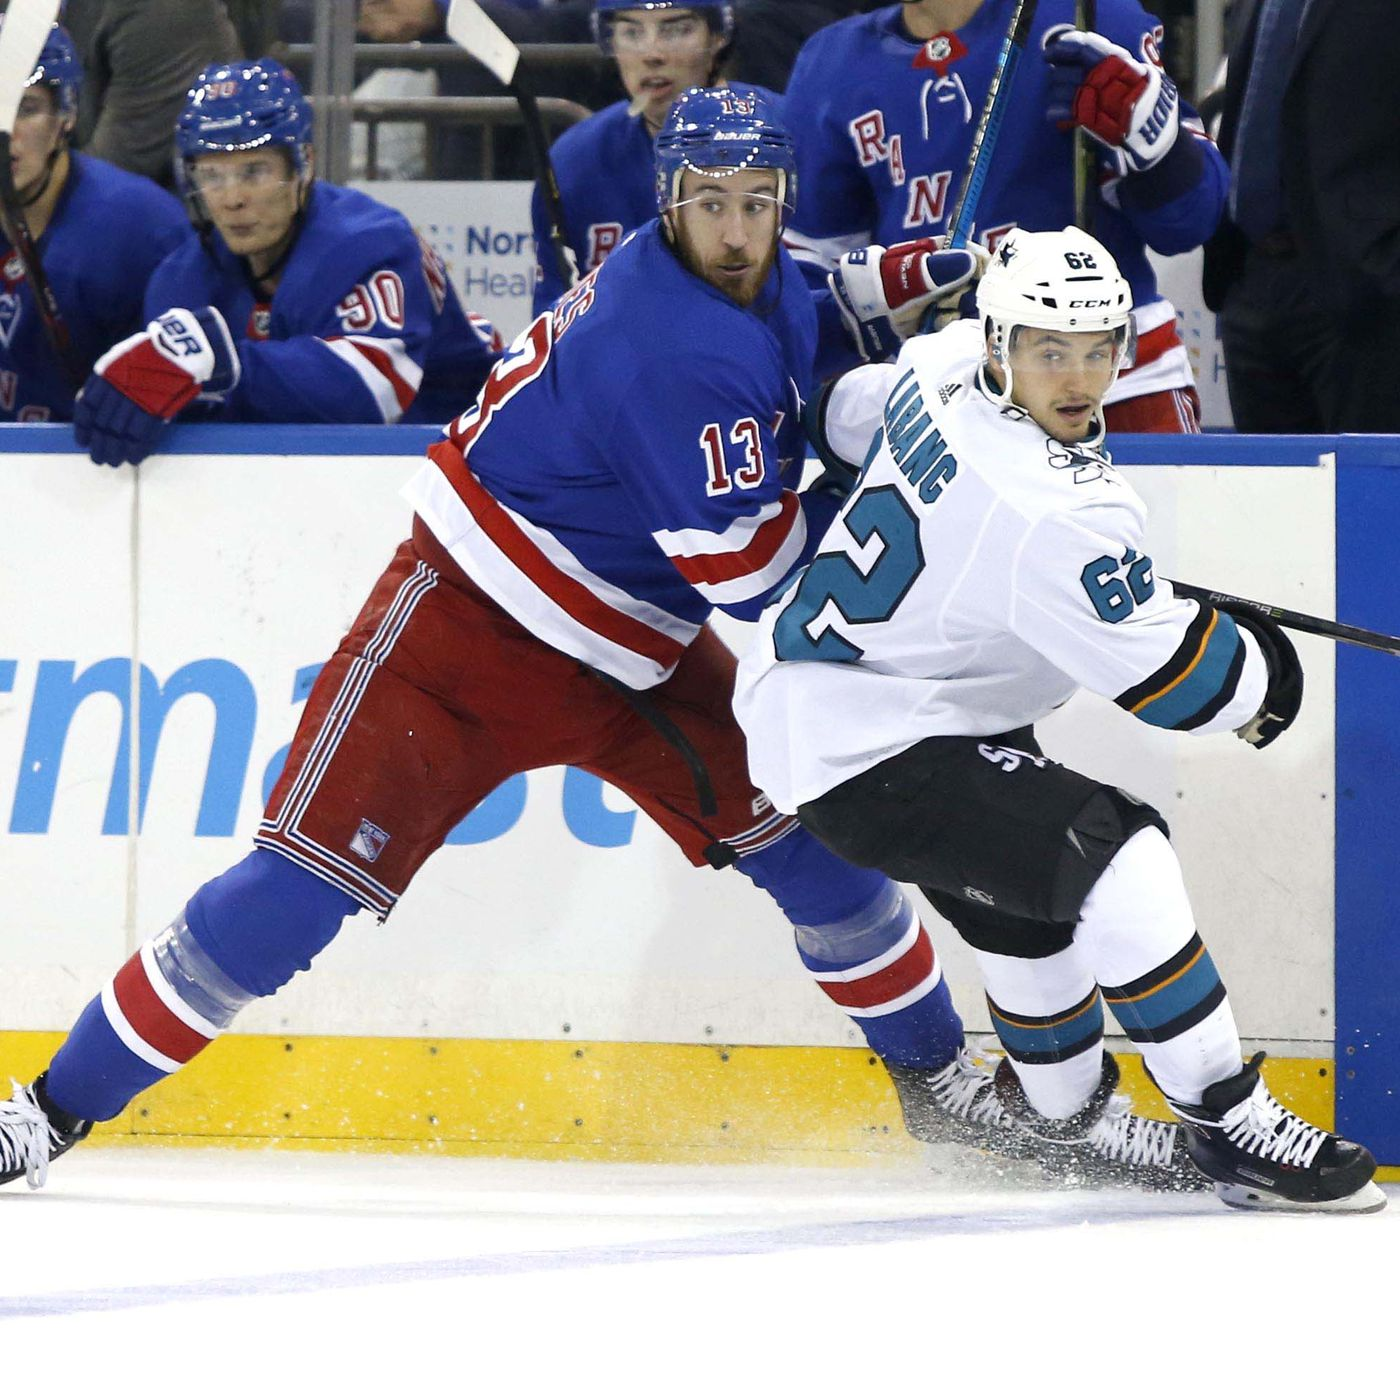 Sharks at Rangers 3 recap 2c4e25dc4bce